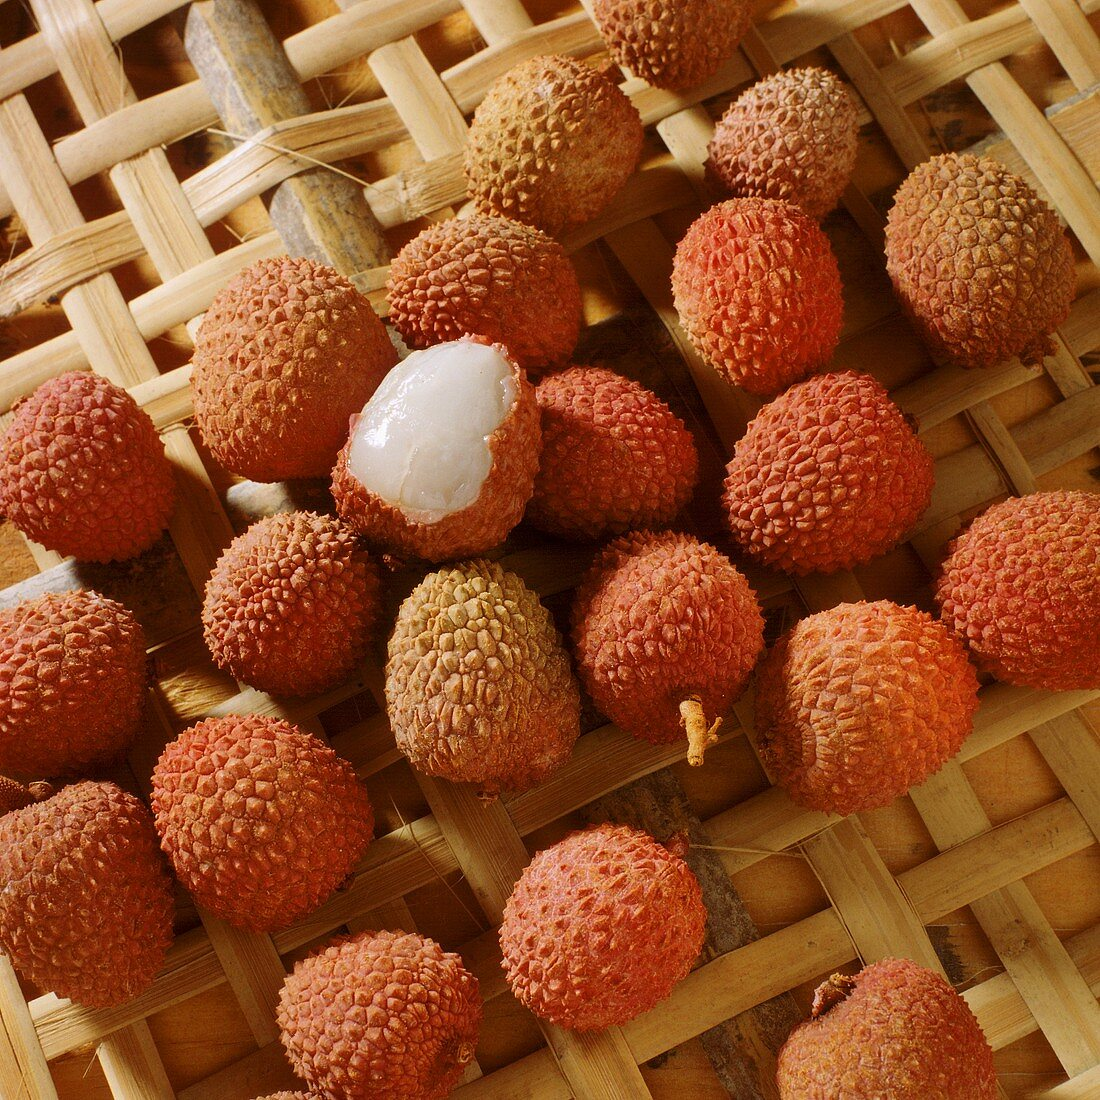 Several lychees on plaited background